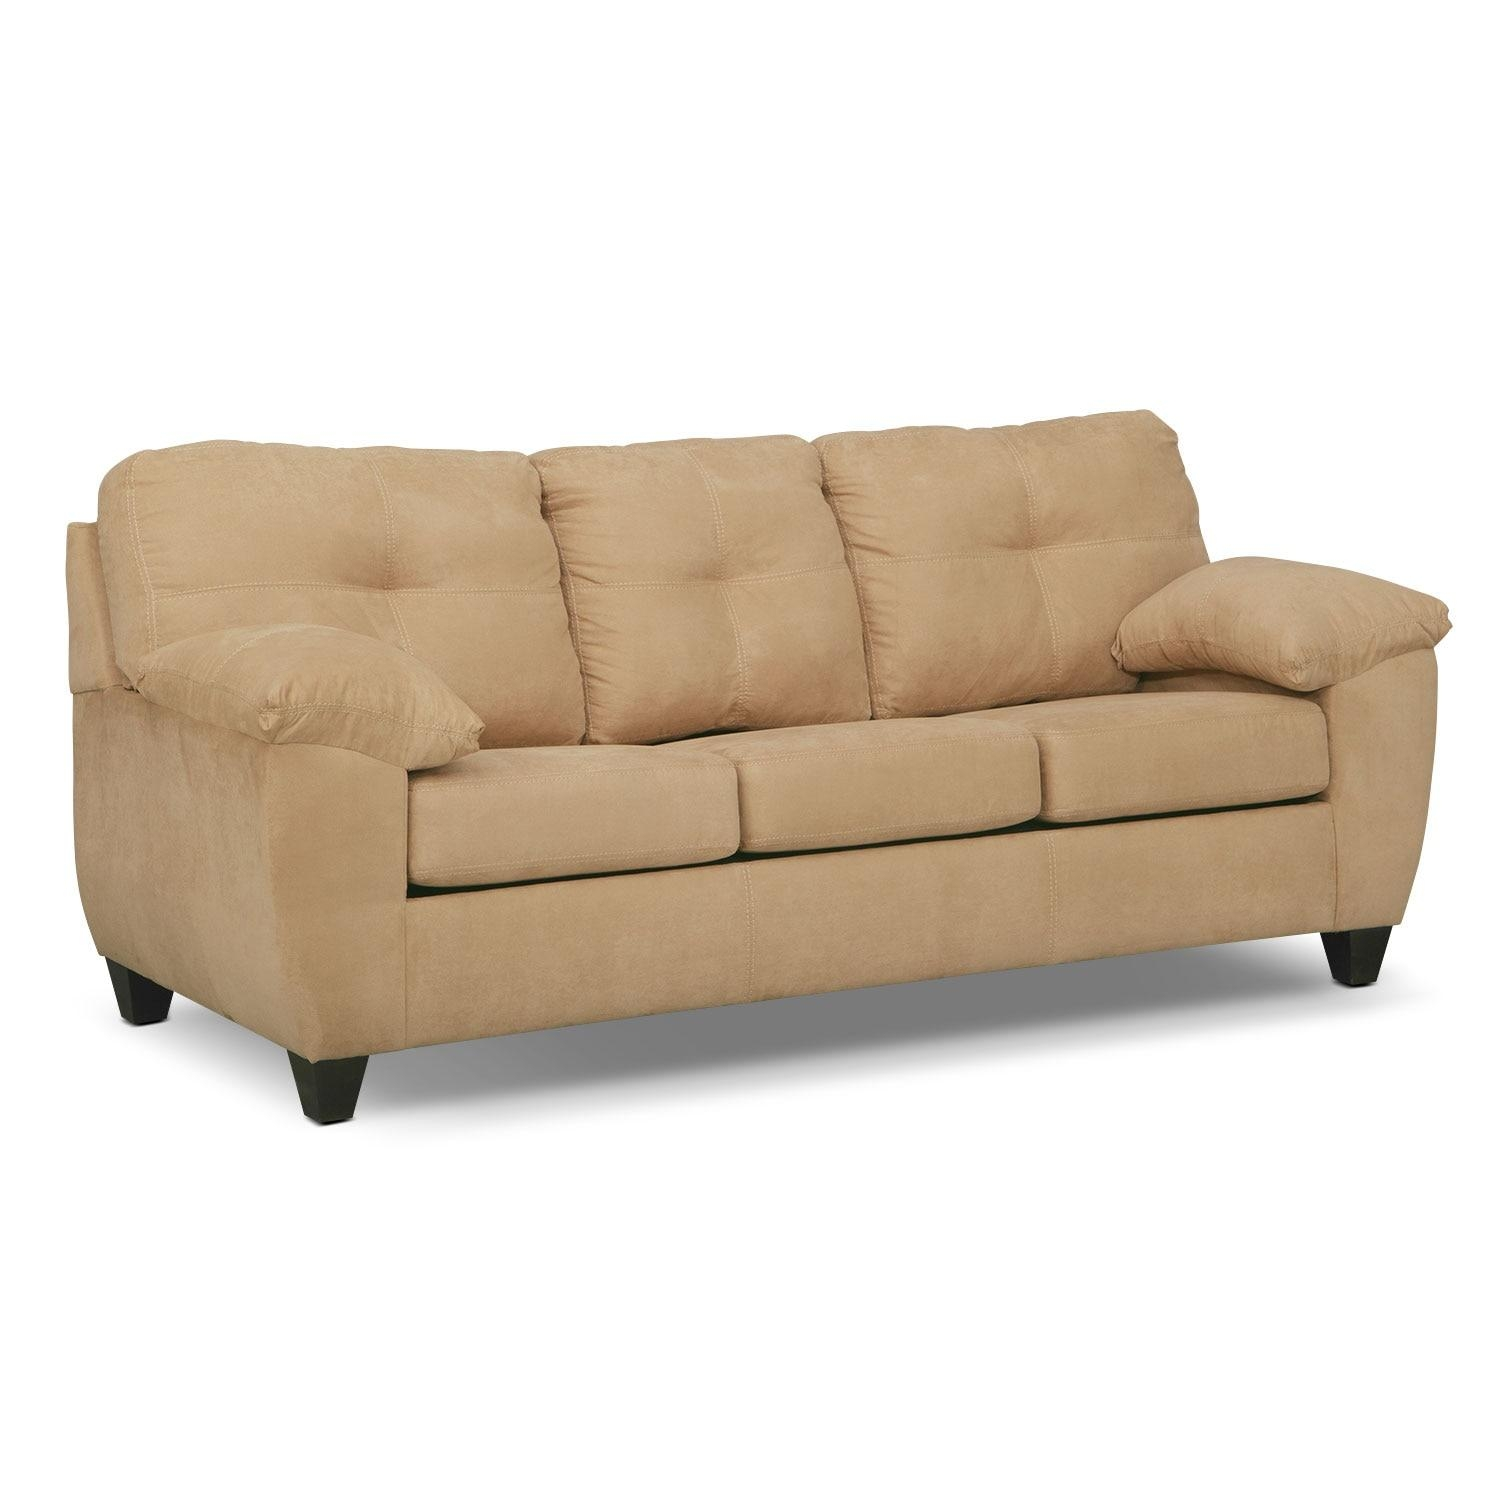 Sleeper Sofas | Value City Furniture | Value City Furniture Regarding City Sofa Beds (View 9 of 20)